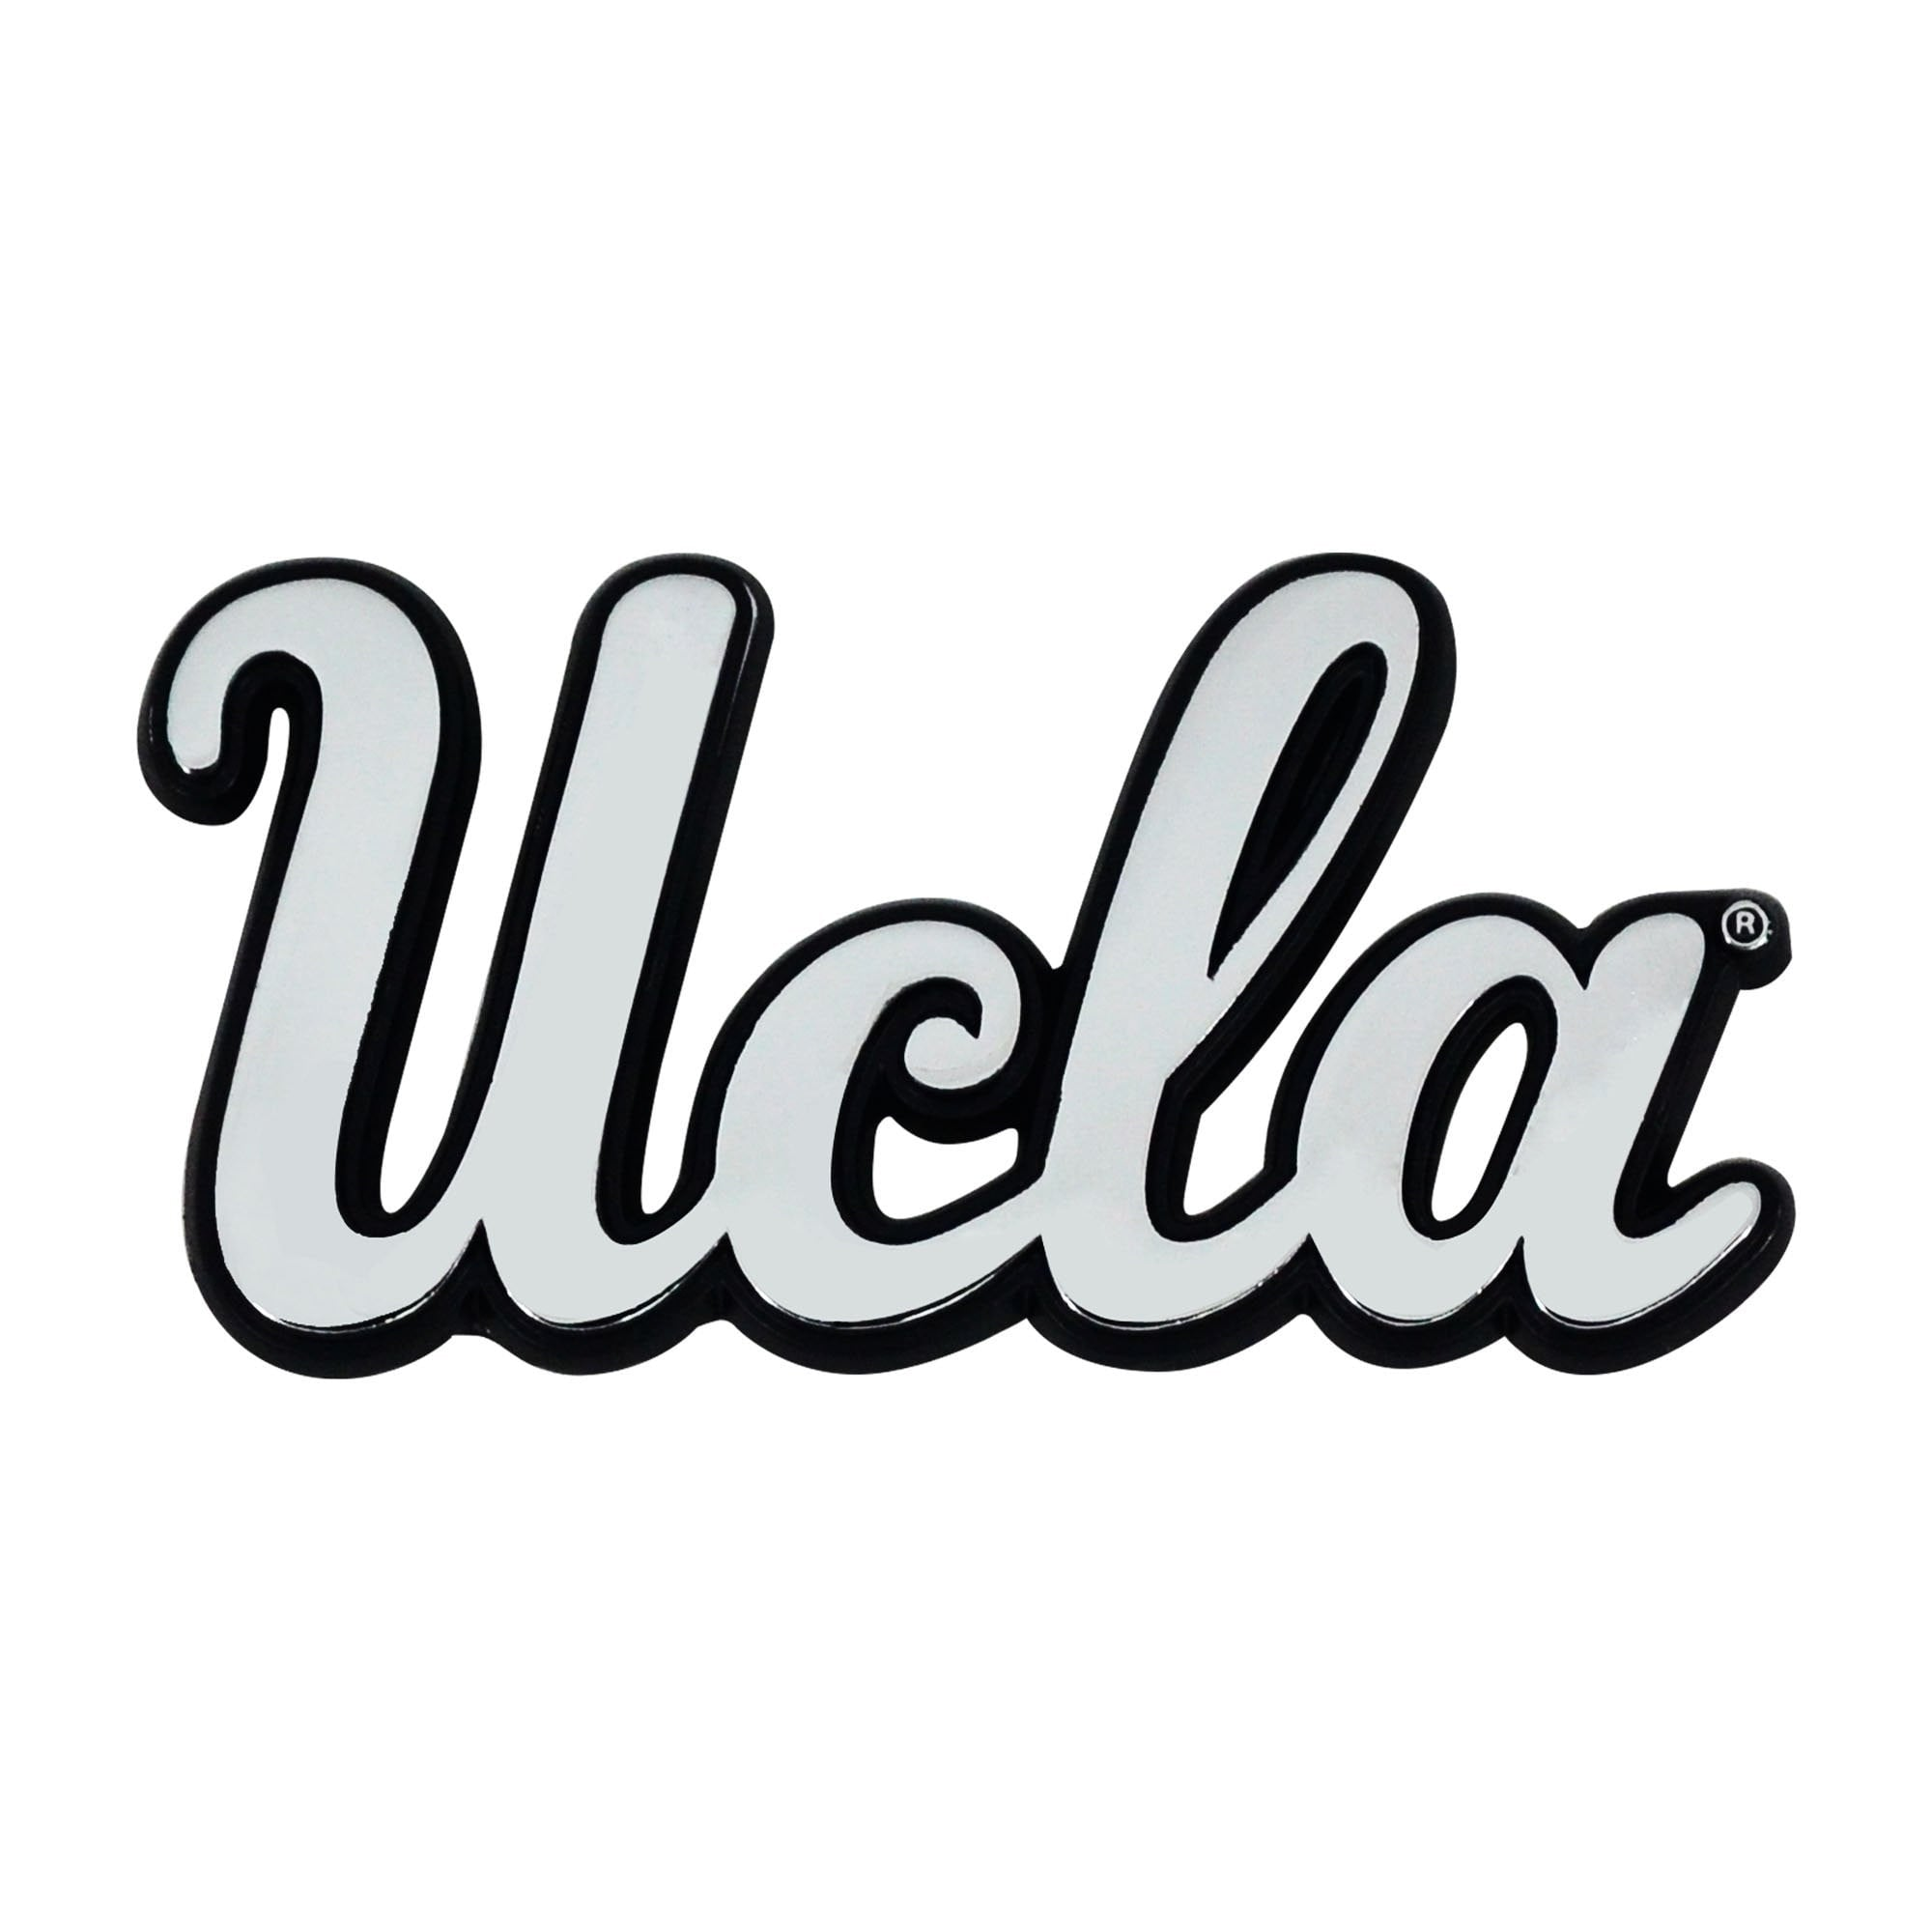 UCLA Bruins 3D Chrome Emblem